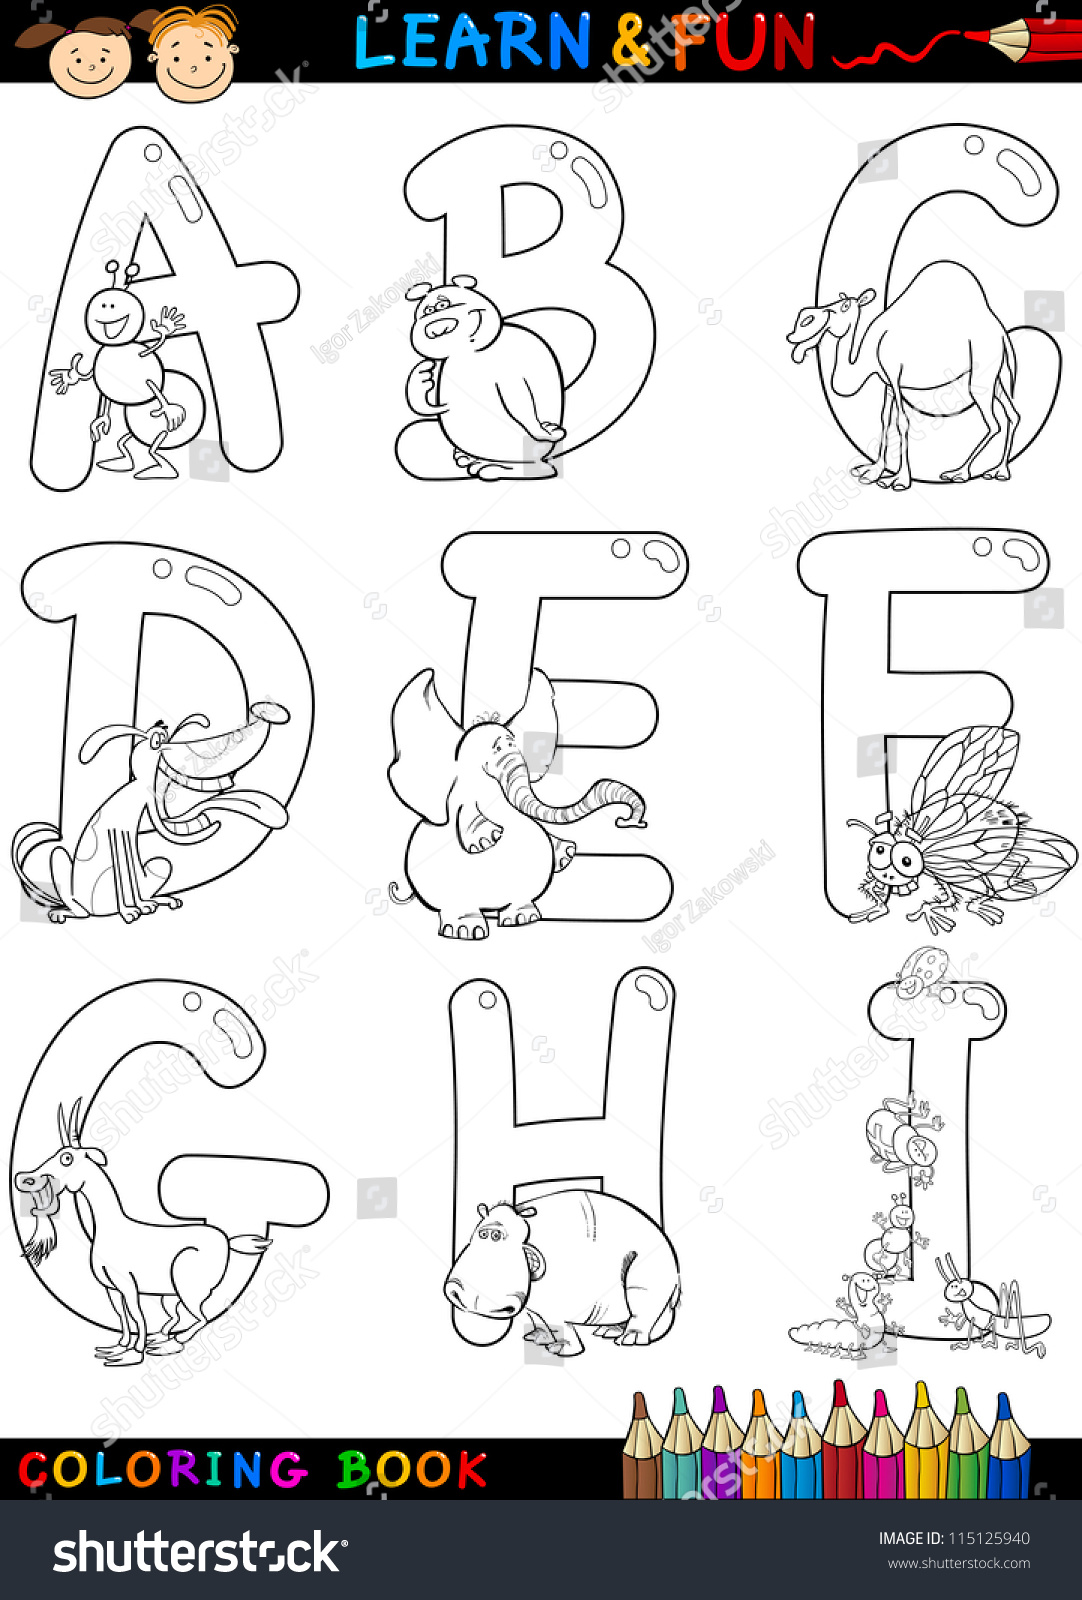 cartoon alphabet coloring book or page set with funny animals for children education and fun - Alphabet Coloring Book